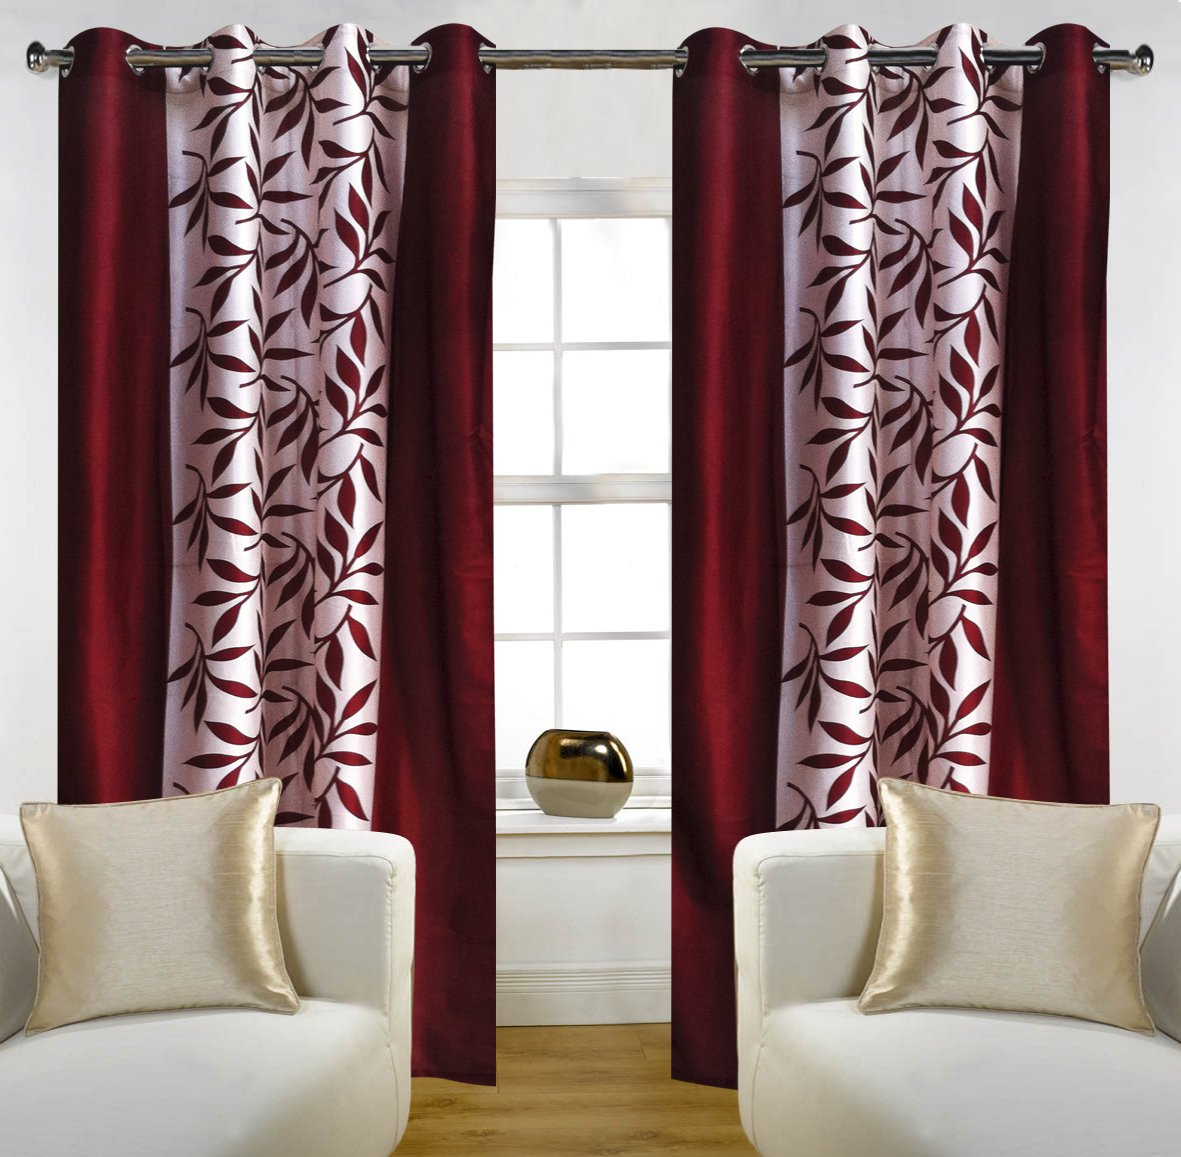 Buy best luxury curtains in india curtains india - Buy Home Candy Eyelet Fancy 2 Piece Polyester Door Curtain Set 84 X48 Maroon Online At Low Prices In India Amazon In